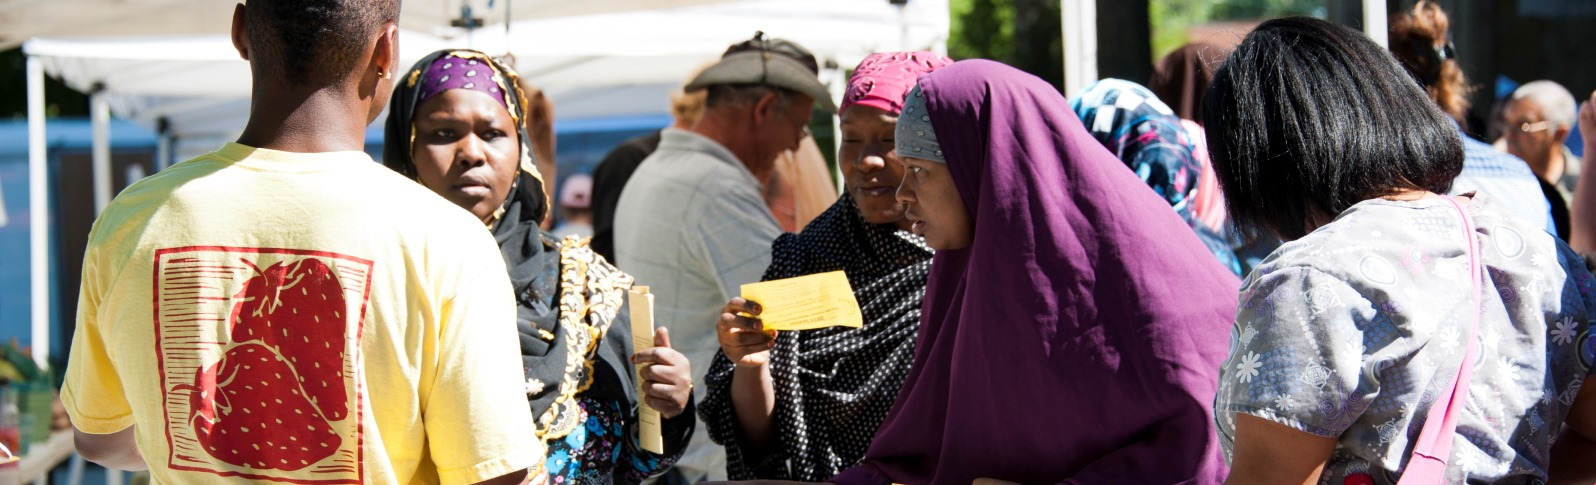 Somali Women at CPH Farmer's Market